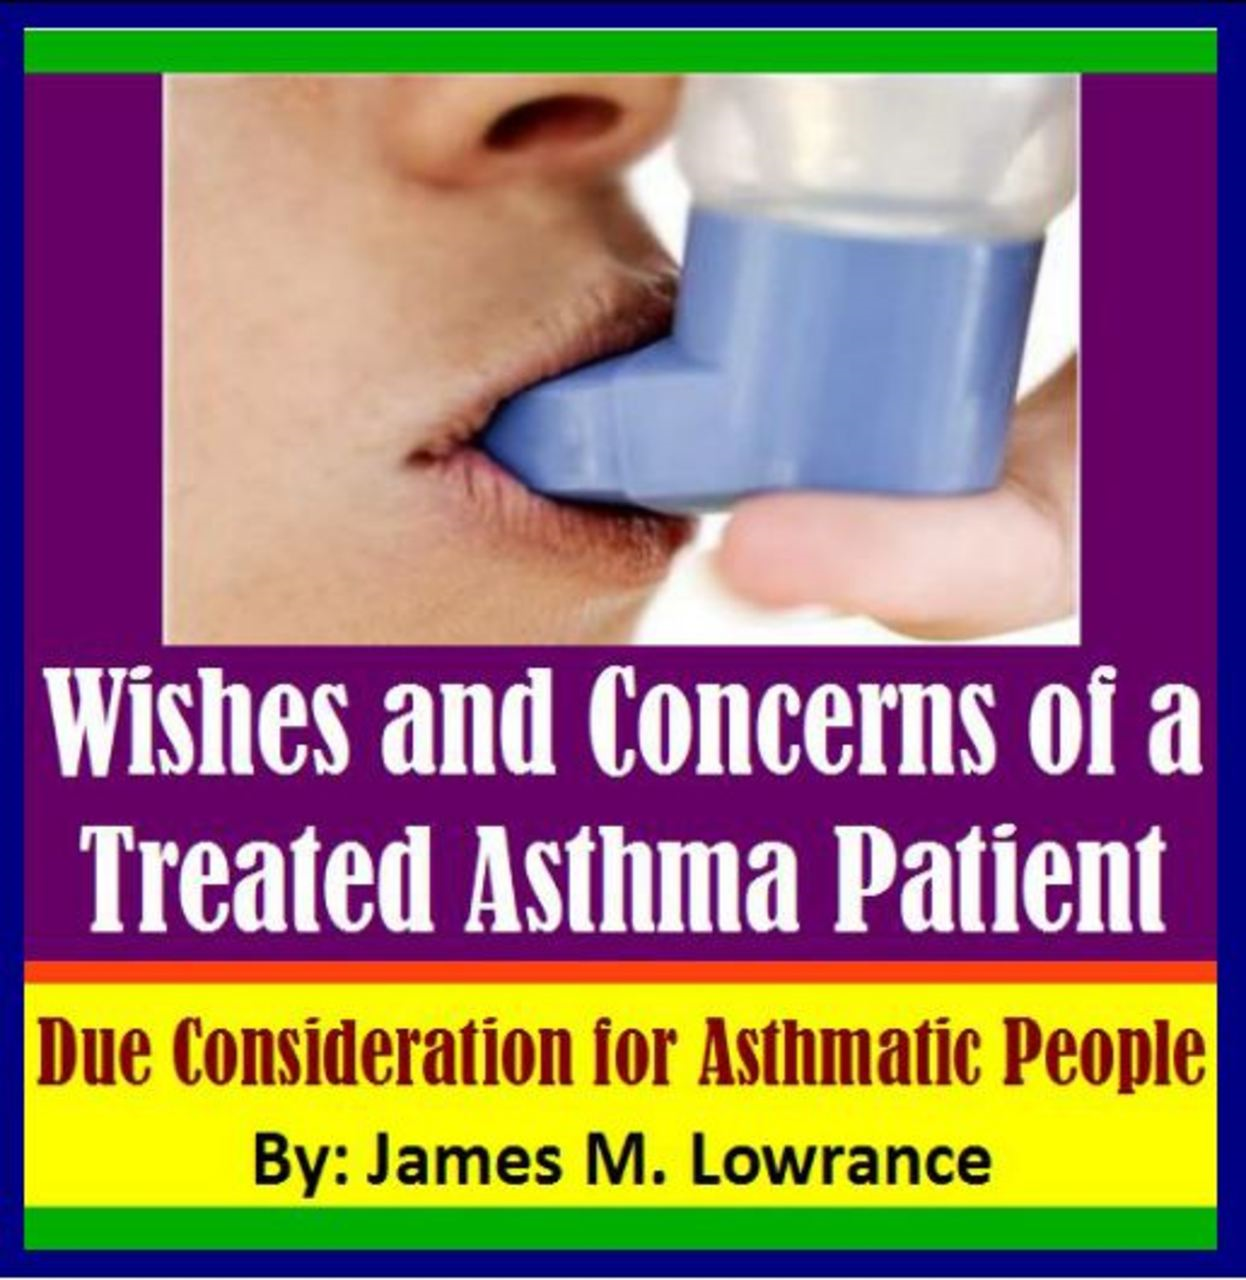 Wishes and Concerns of a Treated Asthma Patient